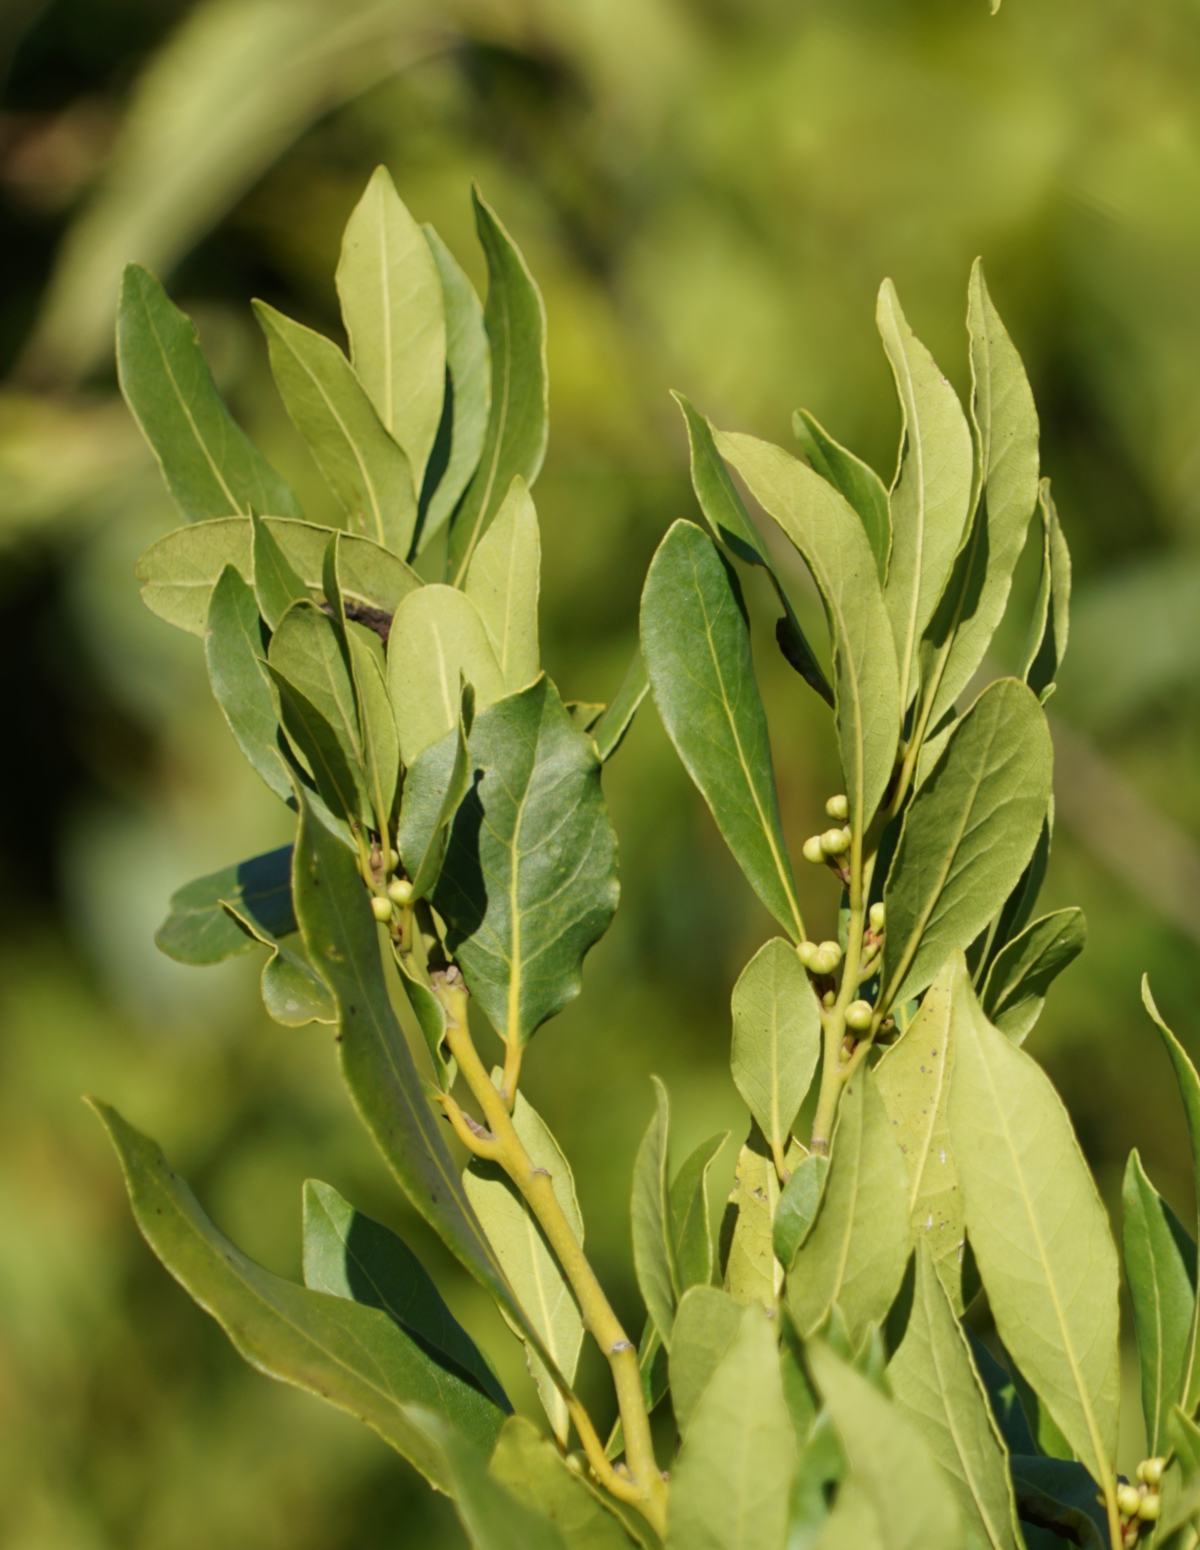 Sprigs of bay laurel against a hazy green background